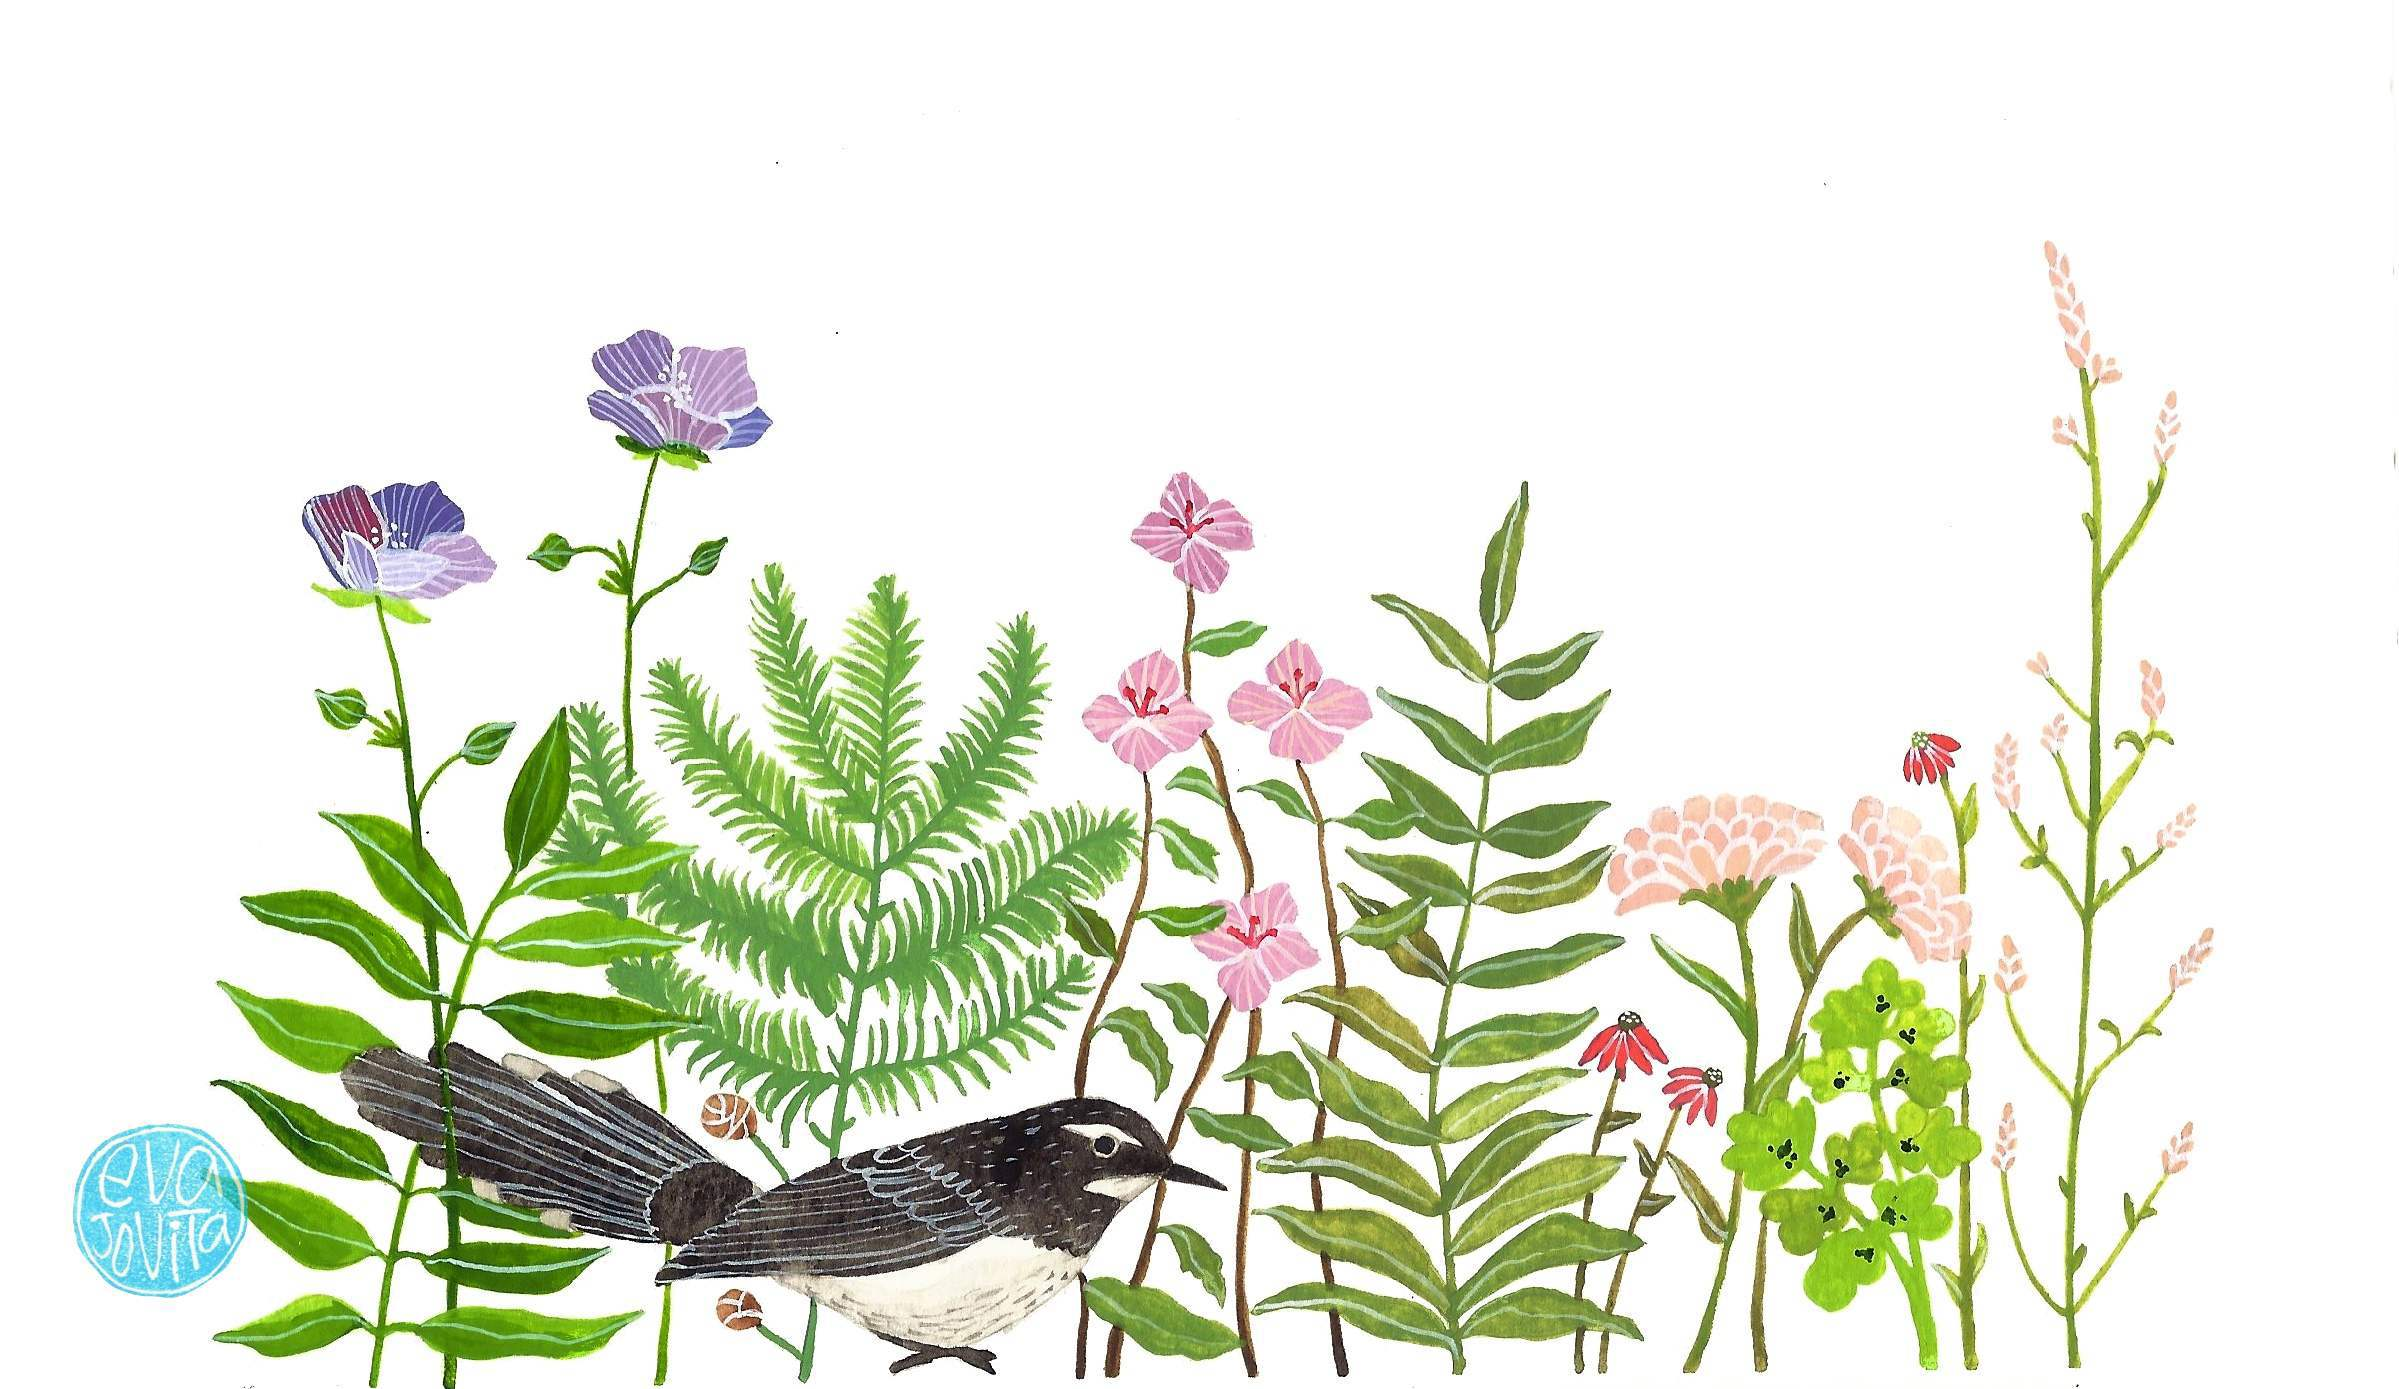 blackbird amidst the flower.jpg